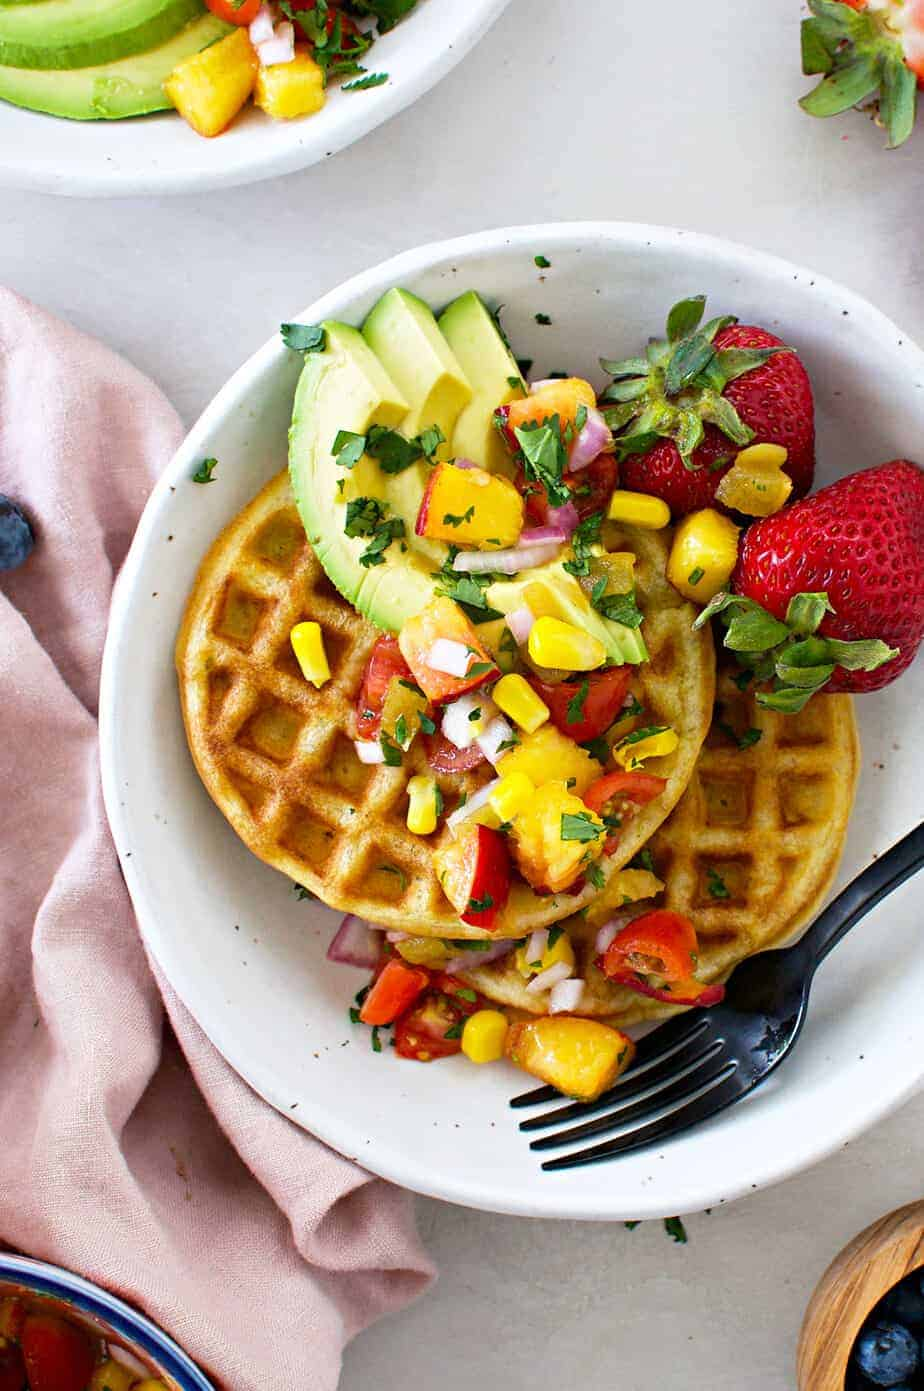 Sweet Corn + Green Chile Waffles with Peach Pico de Gallo recipe (via thepigandquill.com) #breakfast #brunch #dairyfree